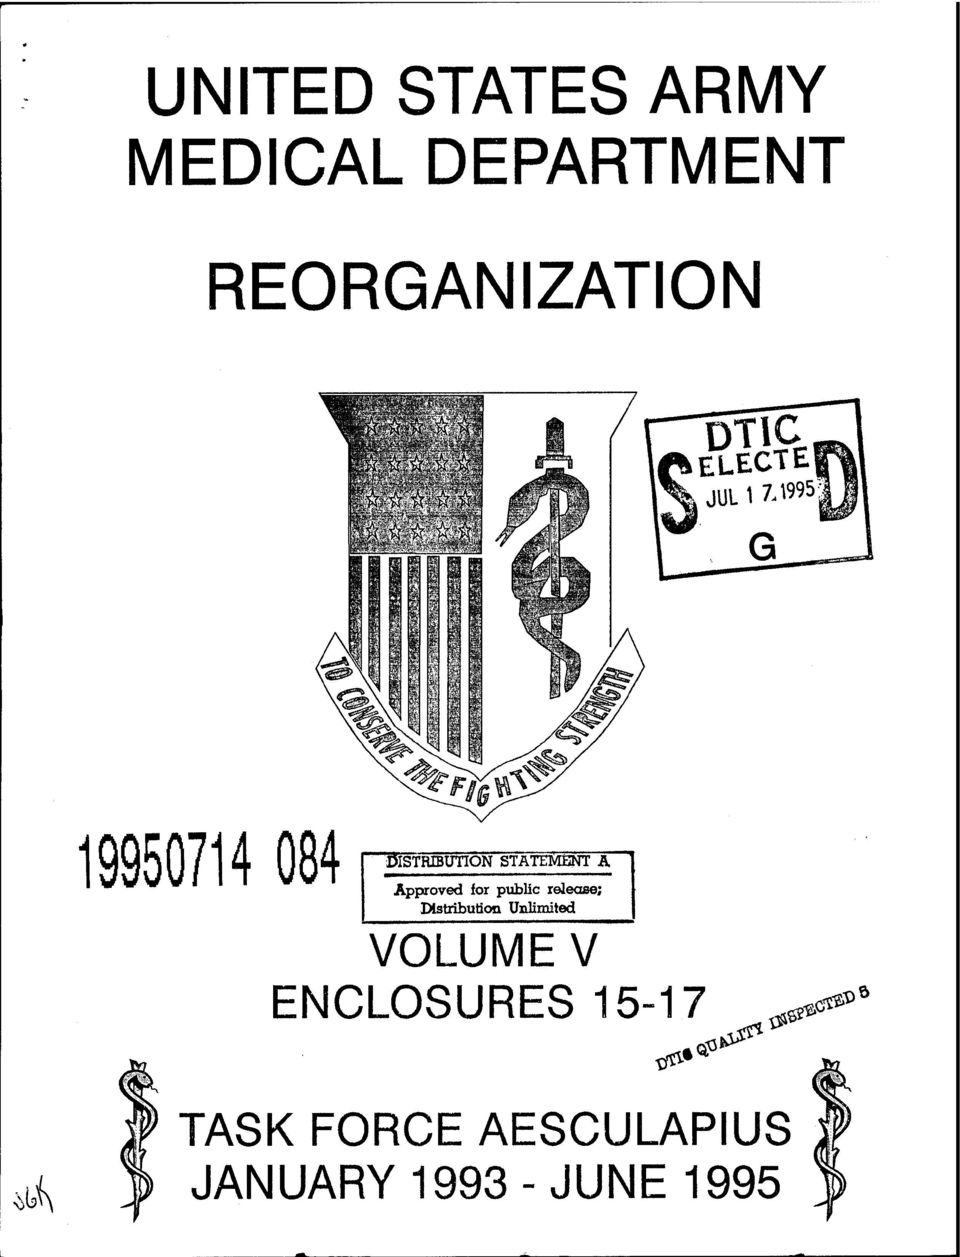 united states army medical department re anization pdf Resume Templates release distributin unlimited volume v enclosures 15 17